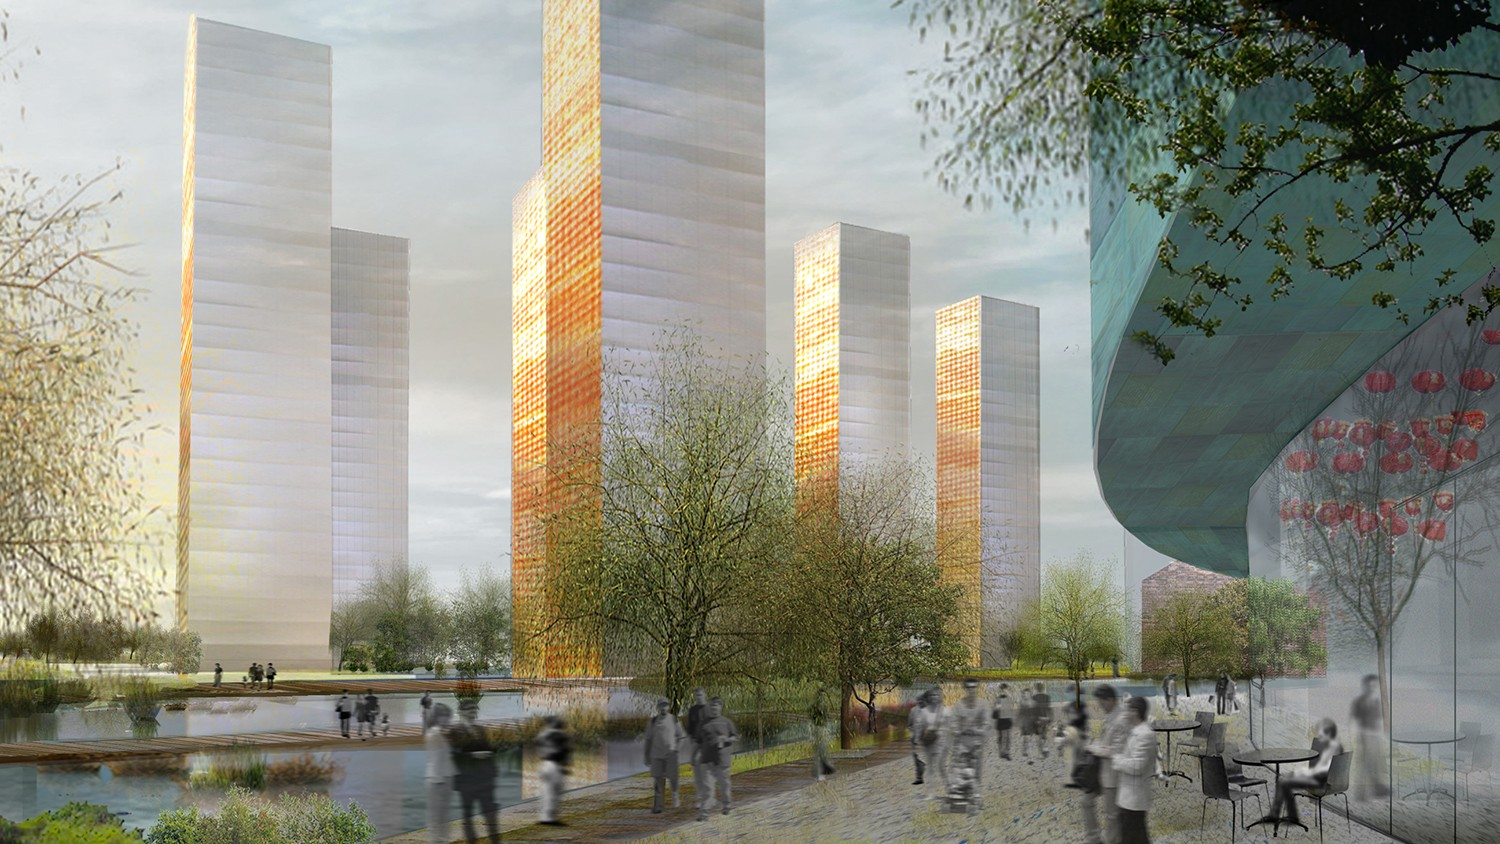 https://s3.us-east-2.amazonaws.com/steven-holl/uploads/projects/project-images/StevenHollArchitects_ShanShui_VIEW1_lanterntowers_daytime1_WH.jpg